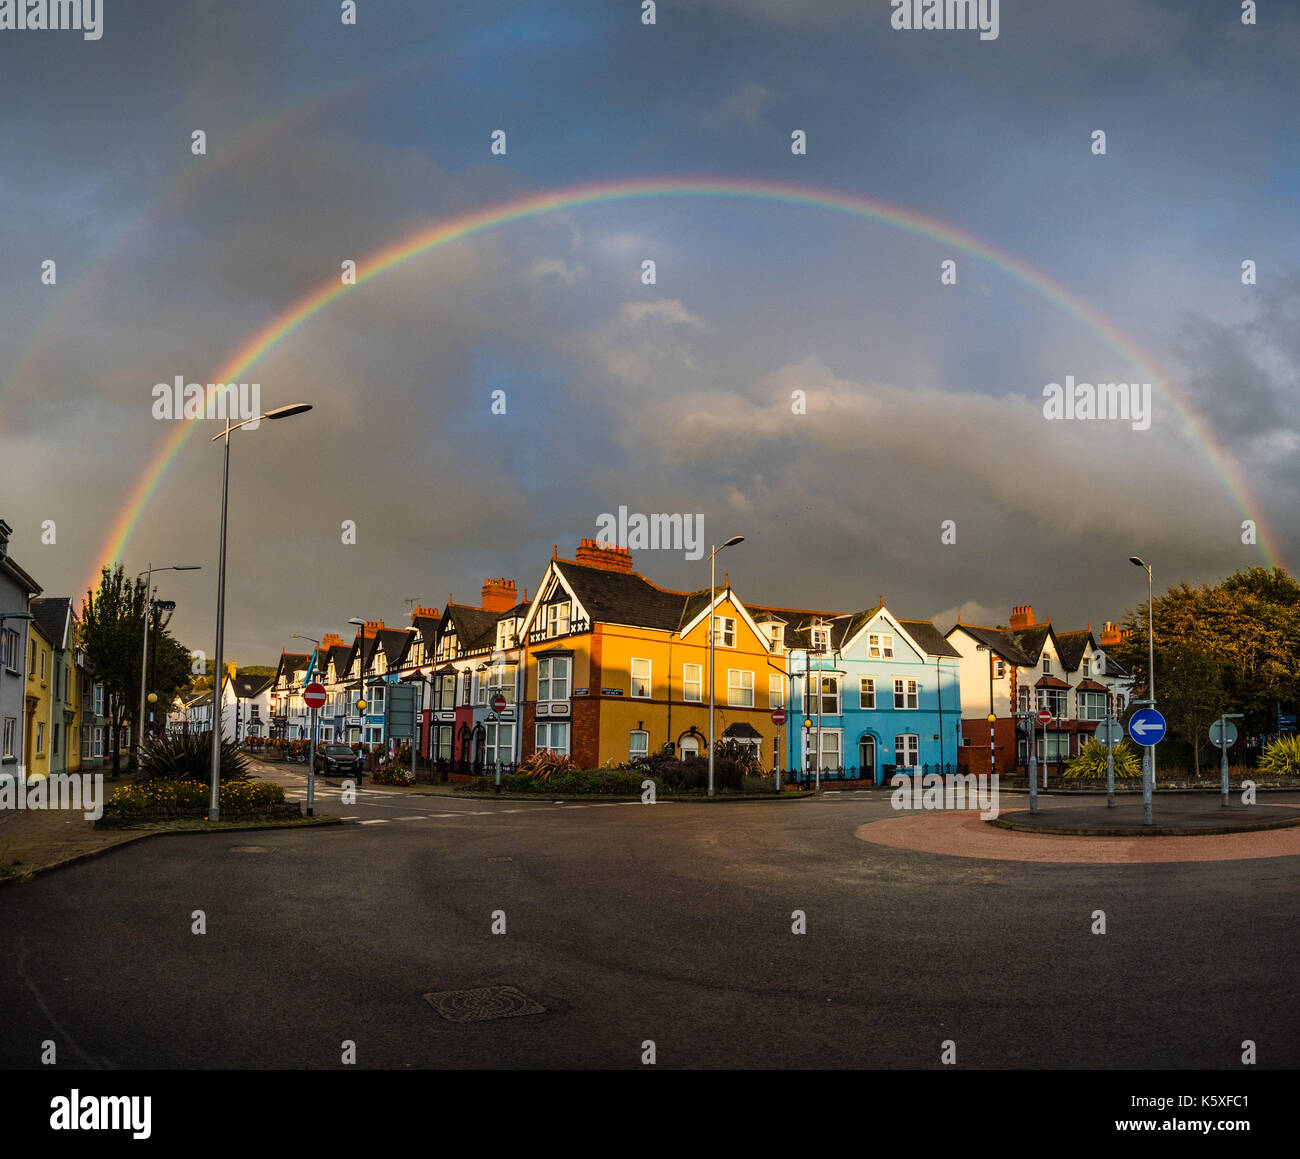 Aberystwyth Wales UK, Sunday 10 September 2017 UK Weather: As the strong wnds continue, a rainbow appears briefly Stock Photo